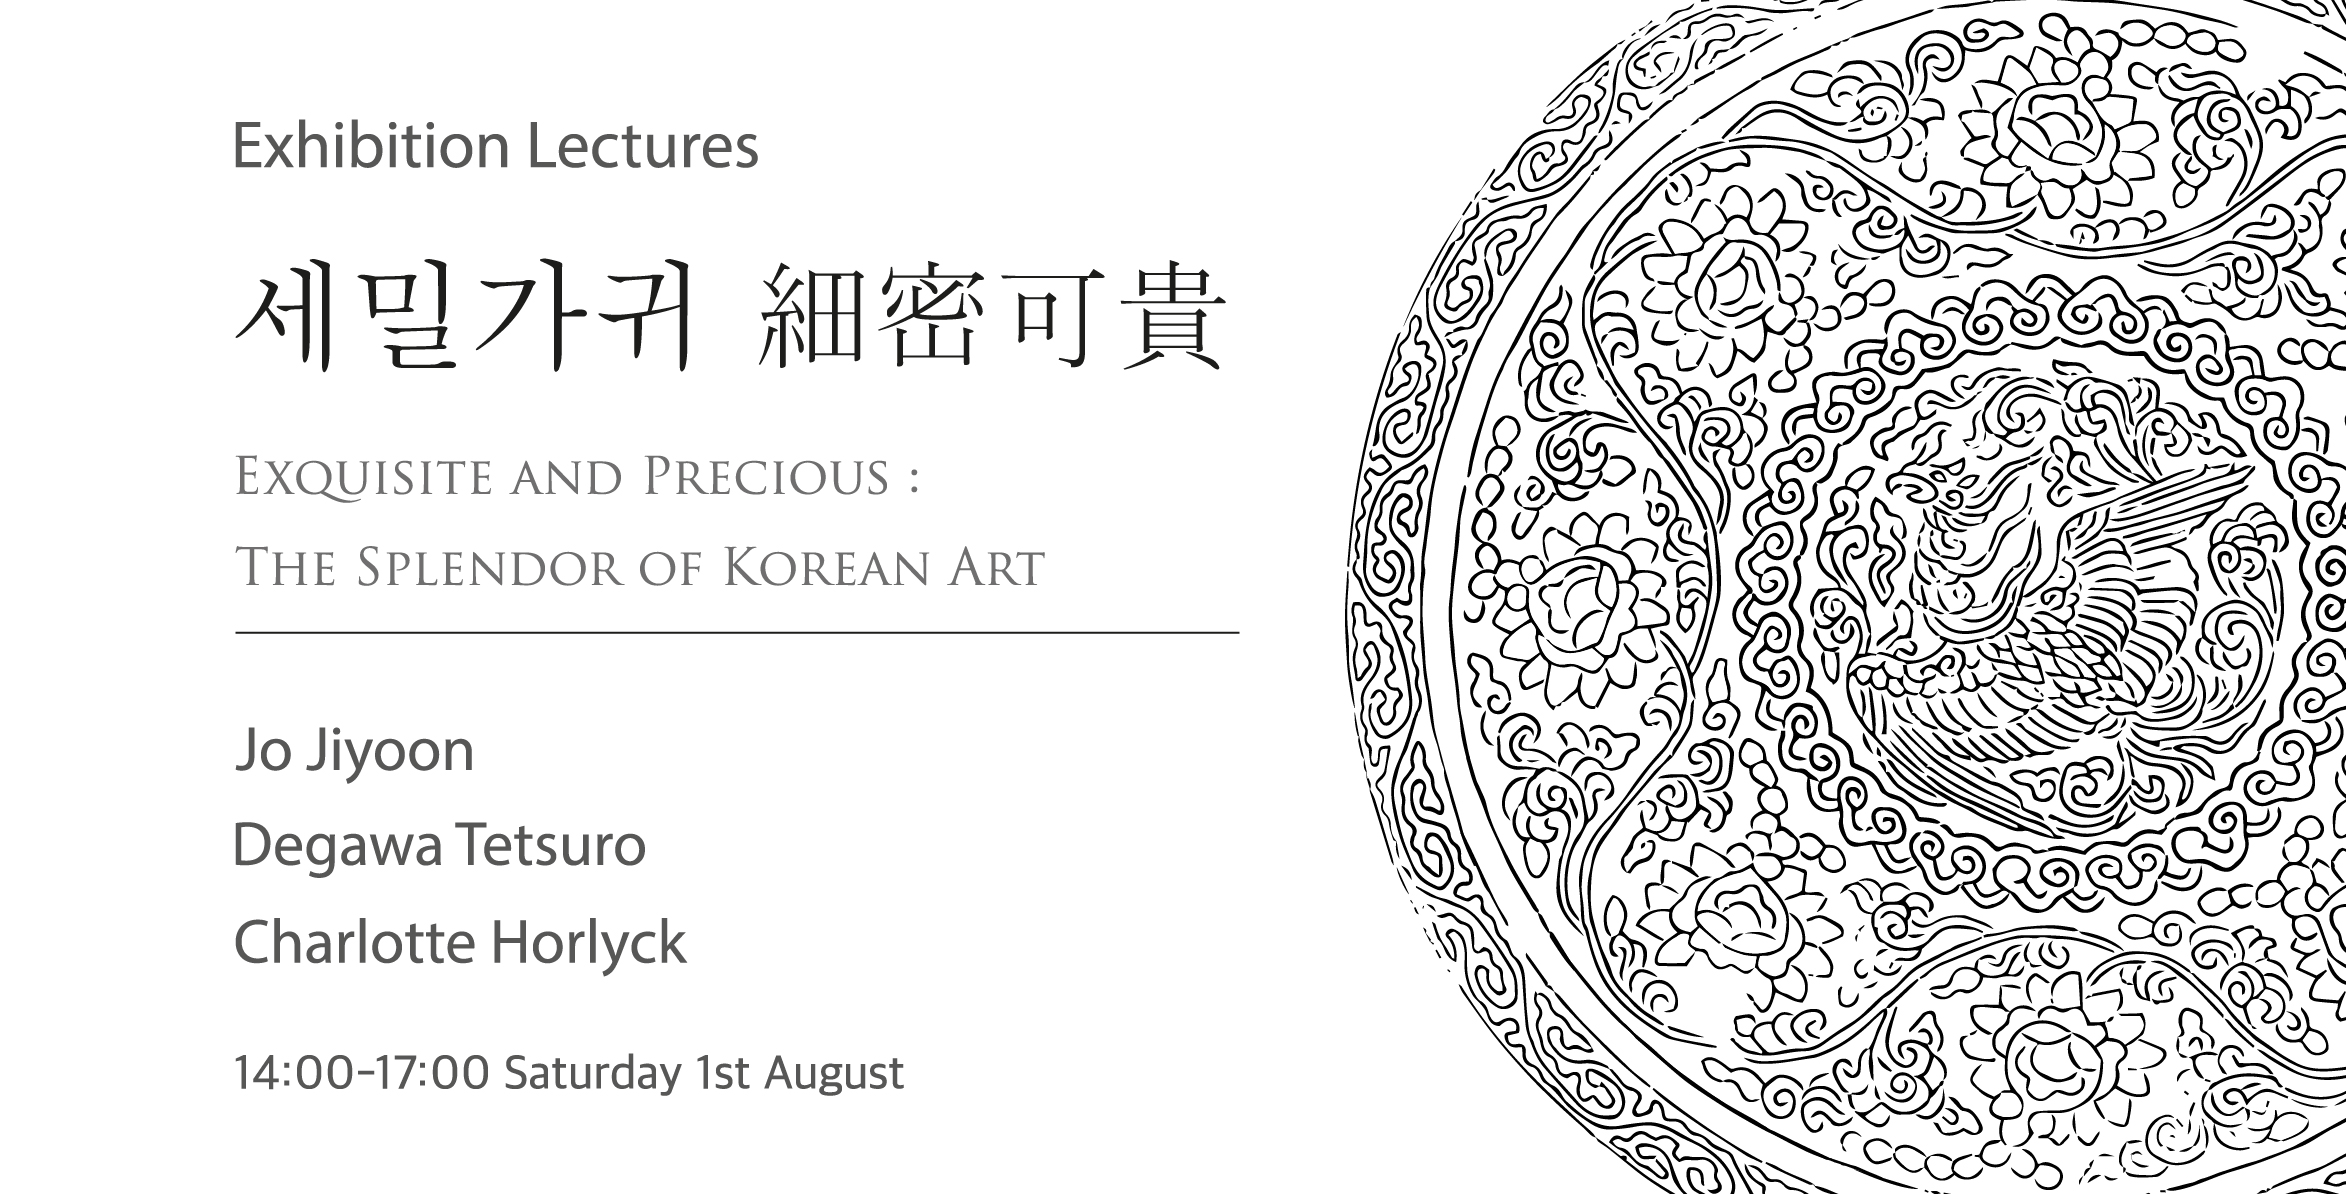 Exhibition Lectures I